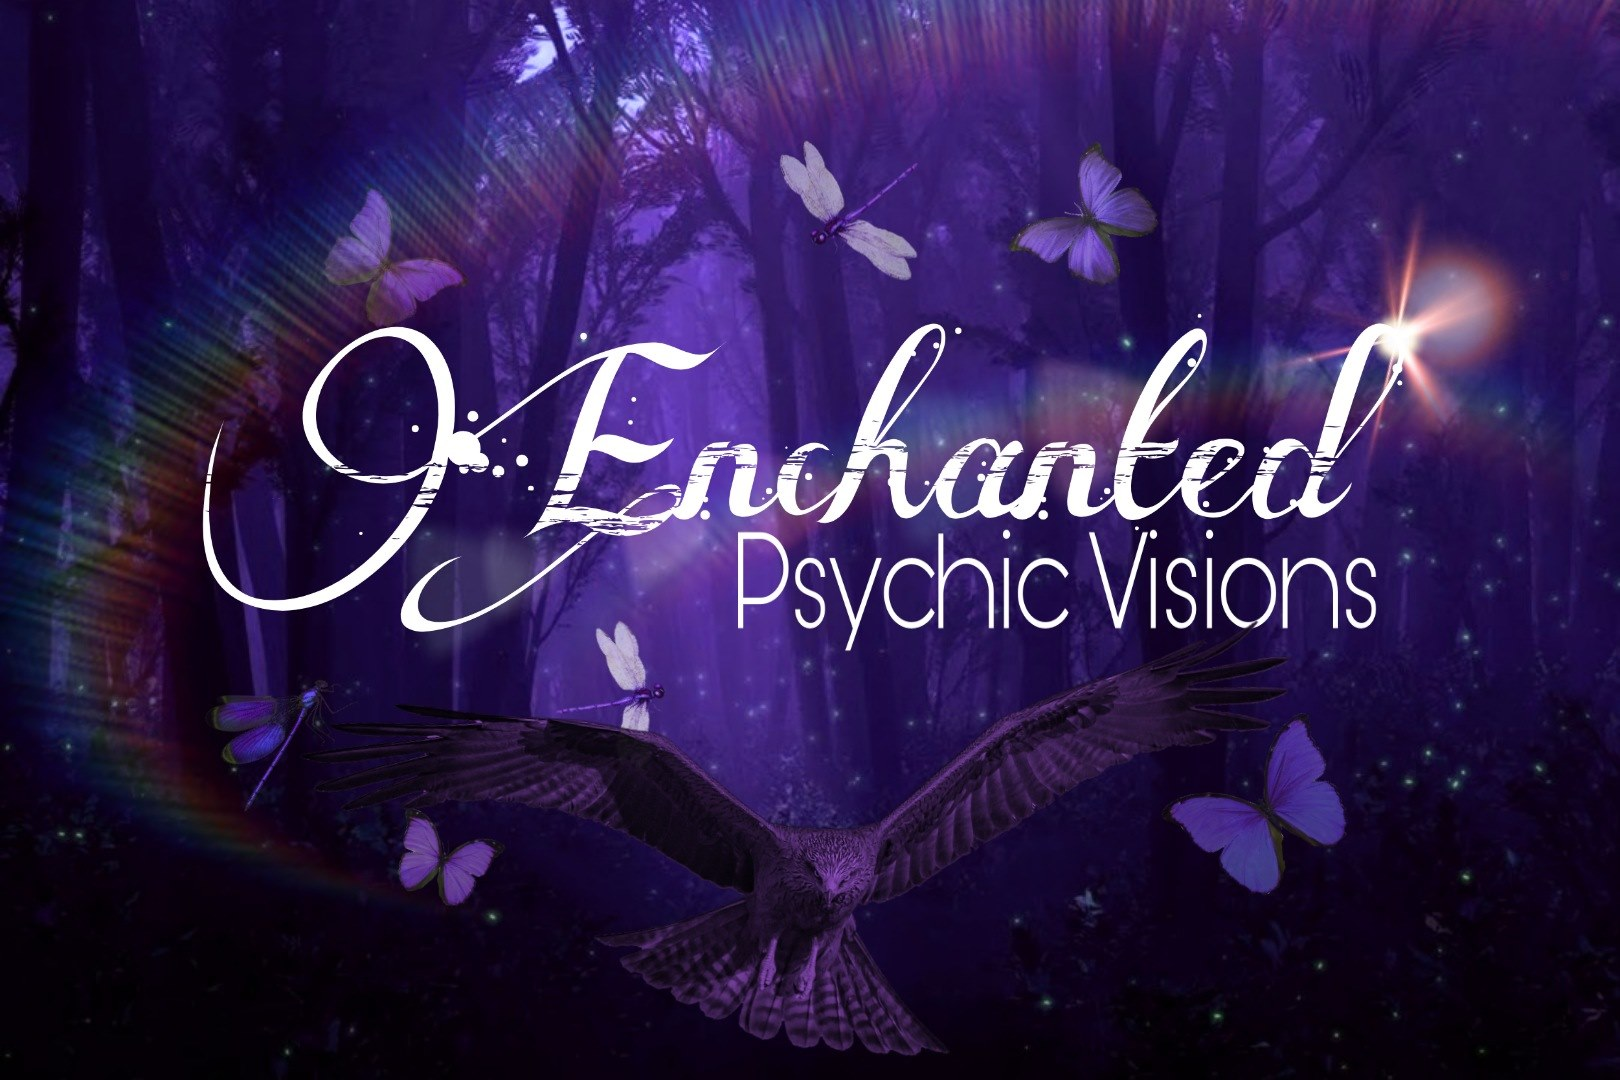 Enchanted Psychic Visions